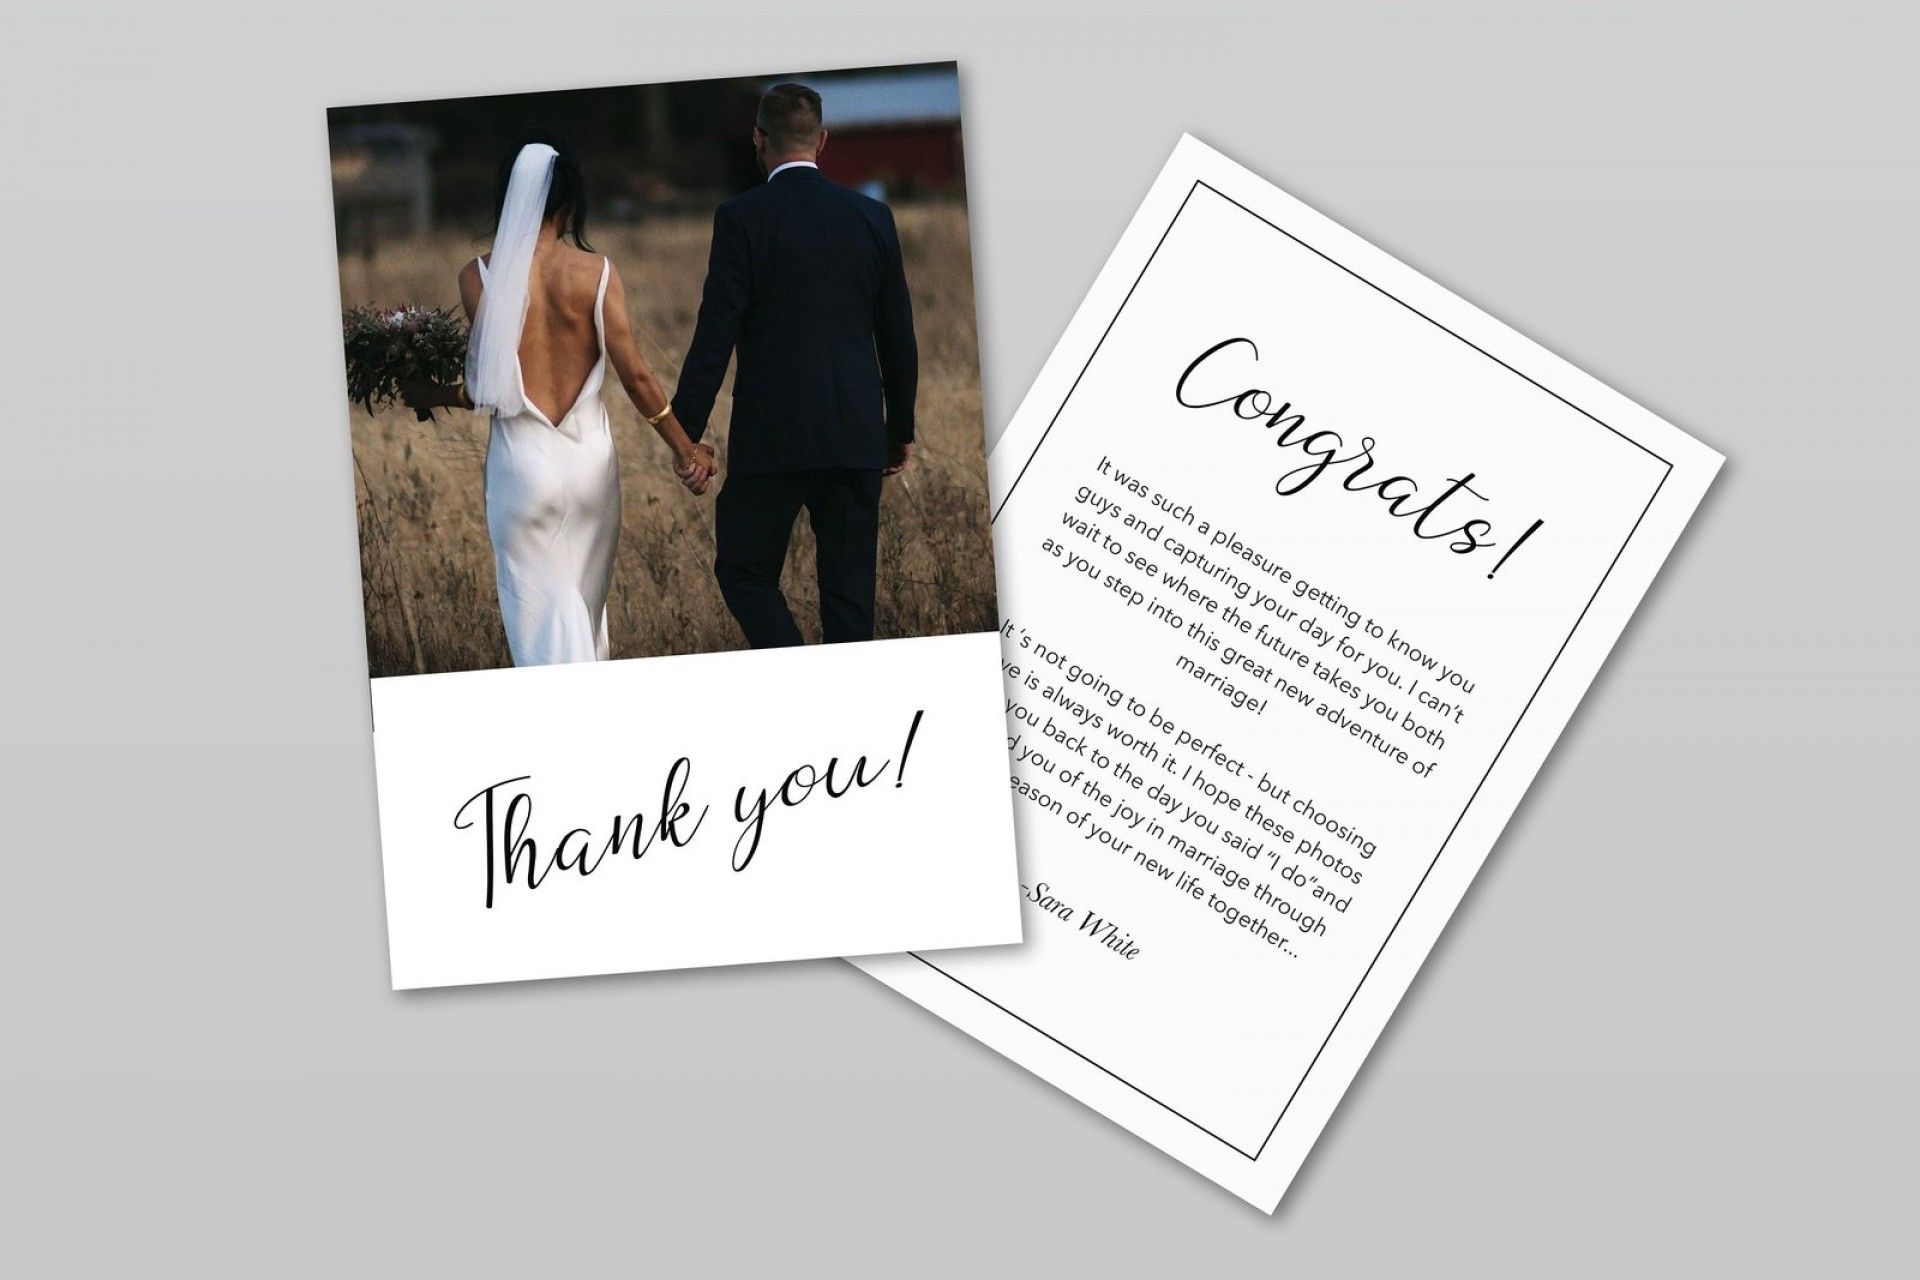 006 Stunning Thank You Card Template Wedding Image  Free Printable Publisher1920